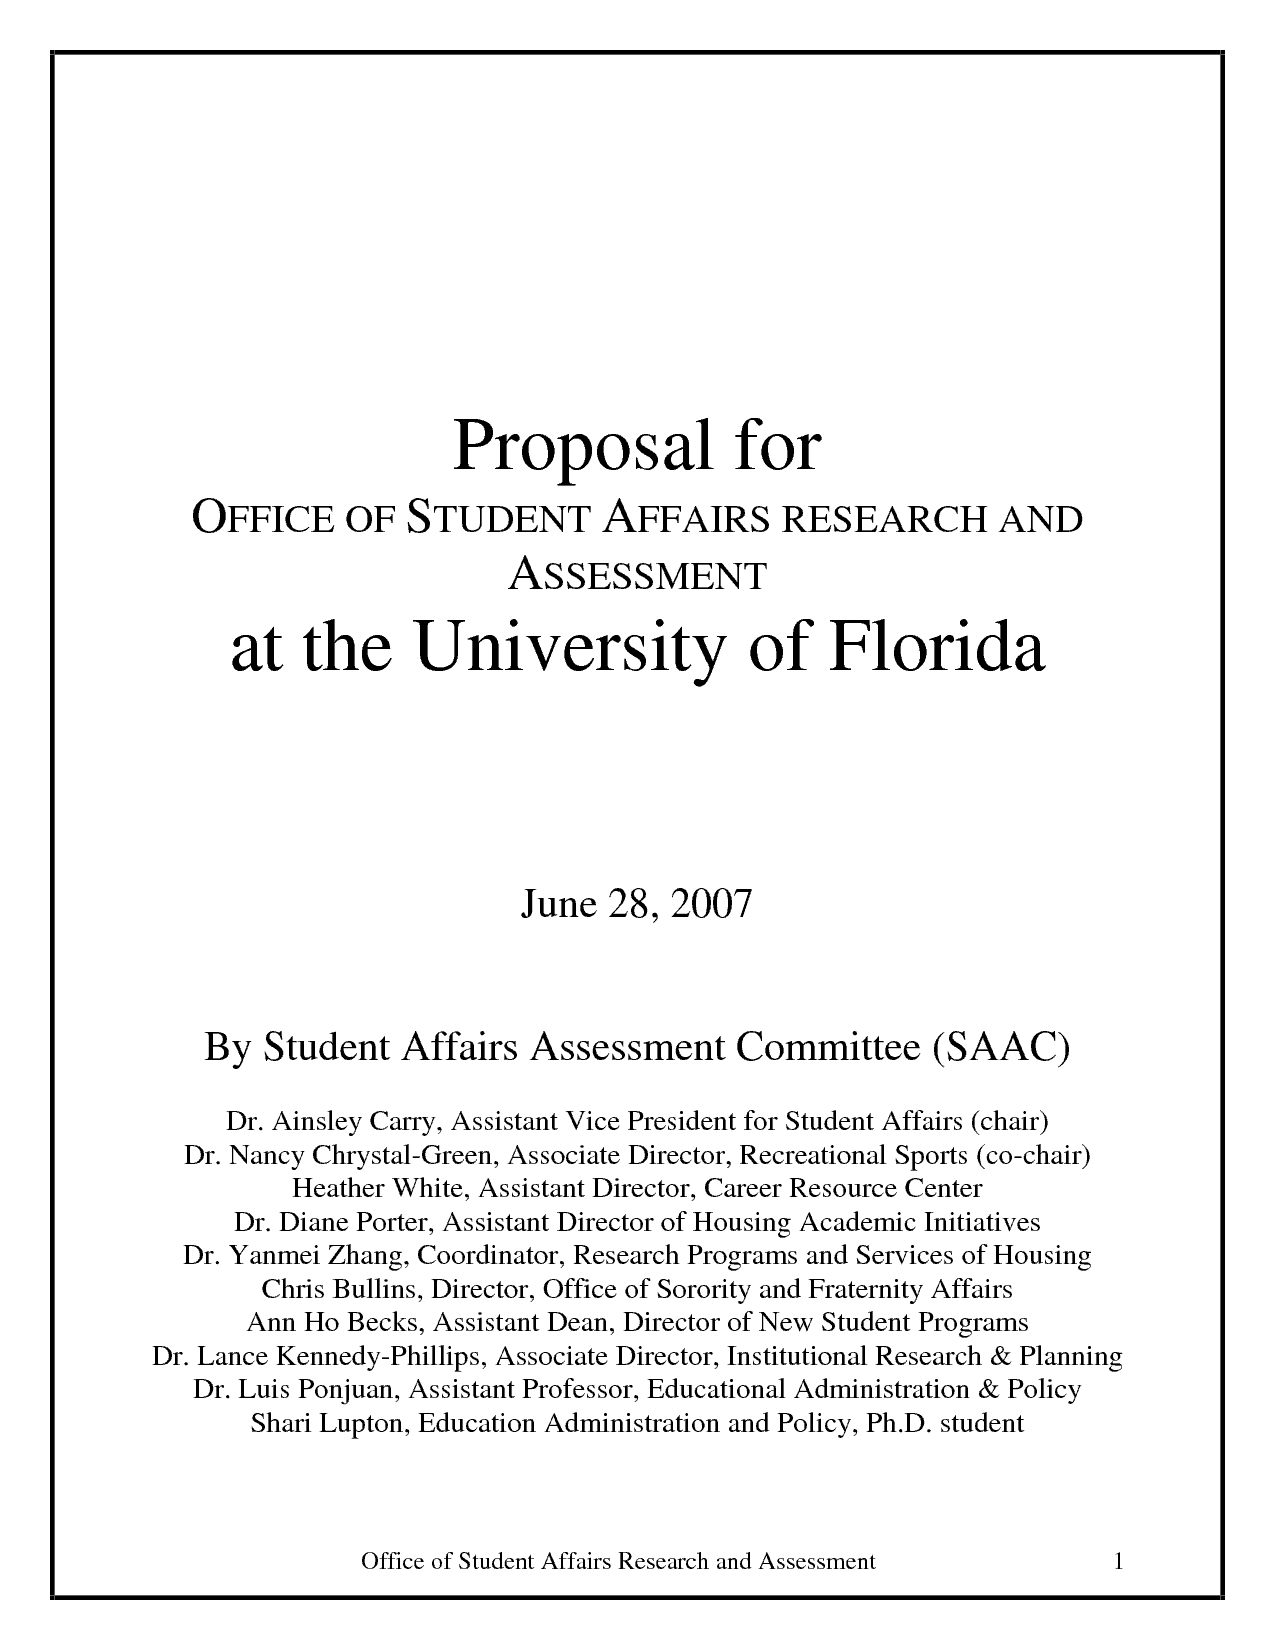 Project Proposal sample 841